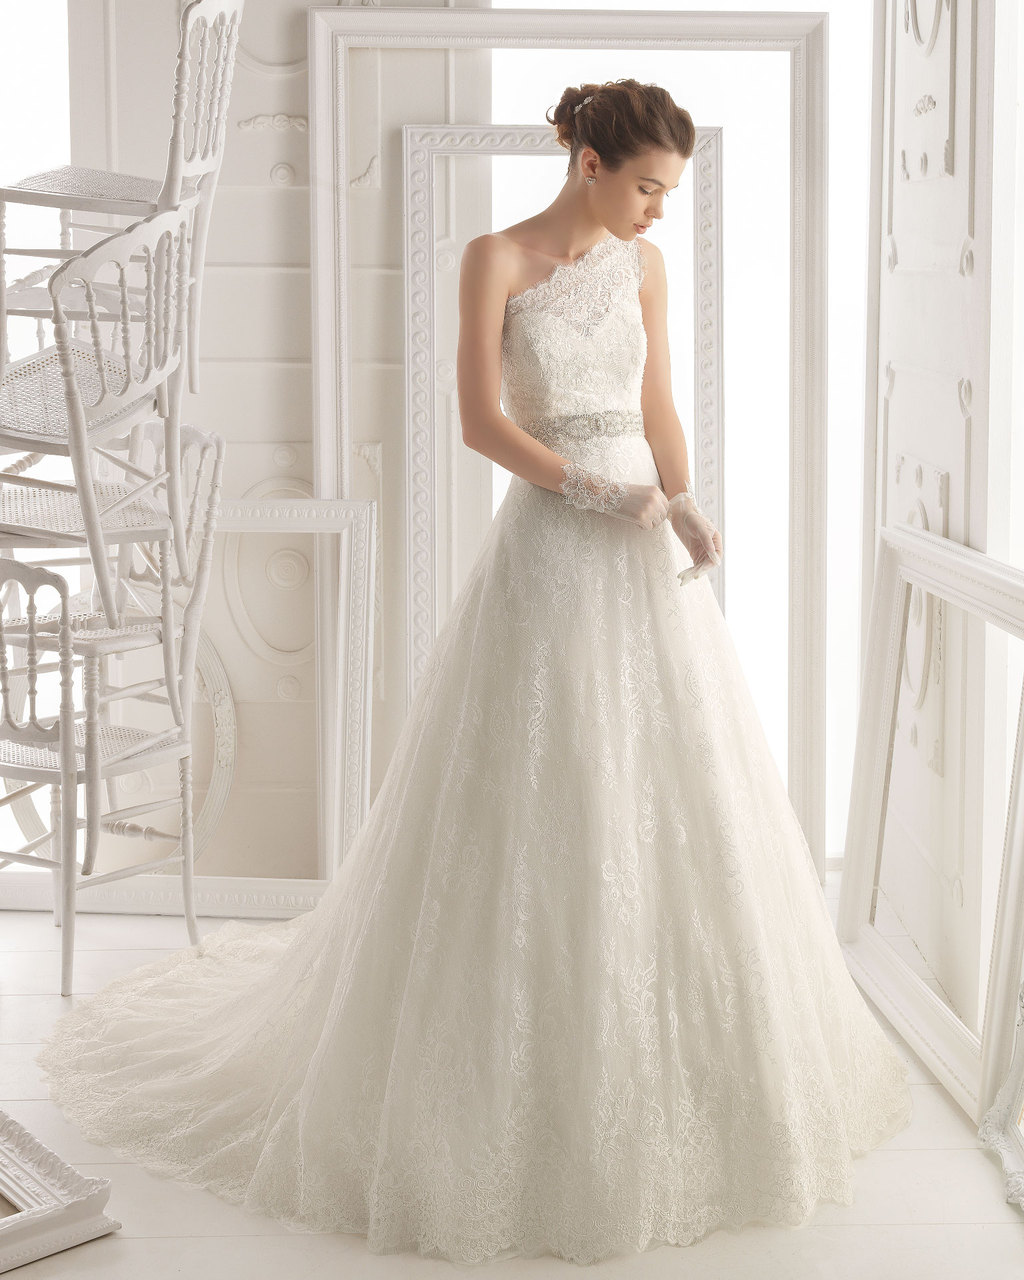 Aire-barcelona-wedding-dress-2014-bridal-oxford.full